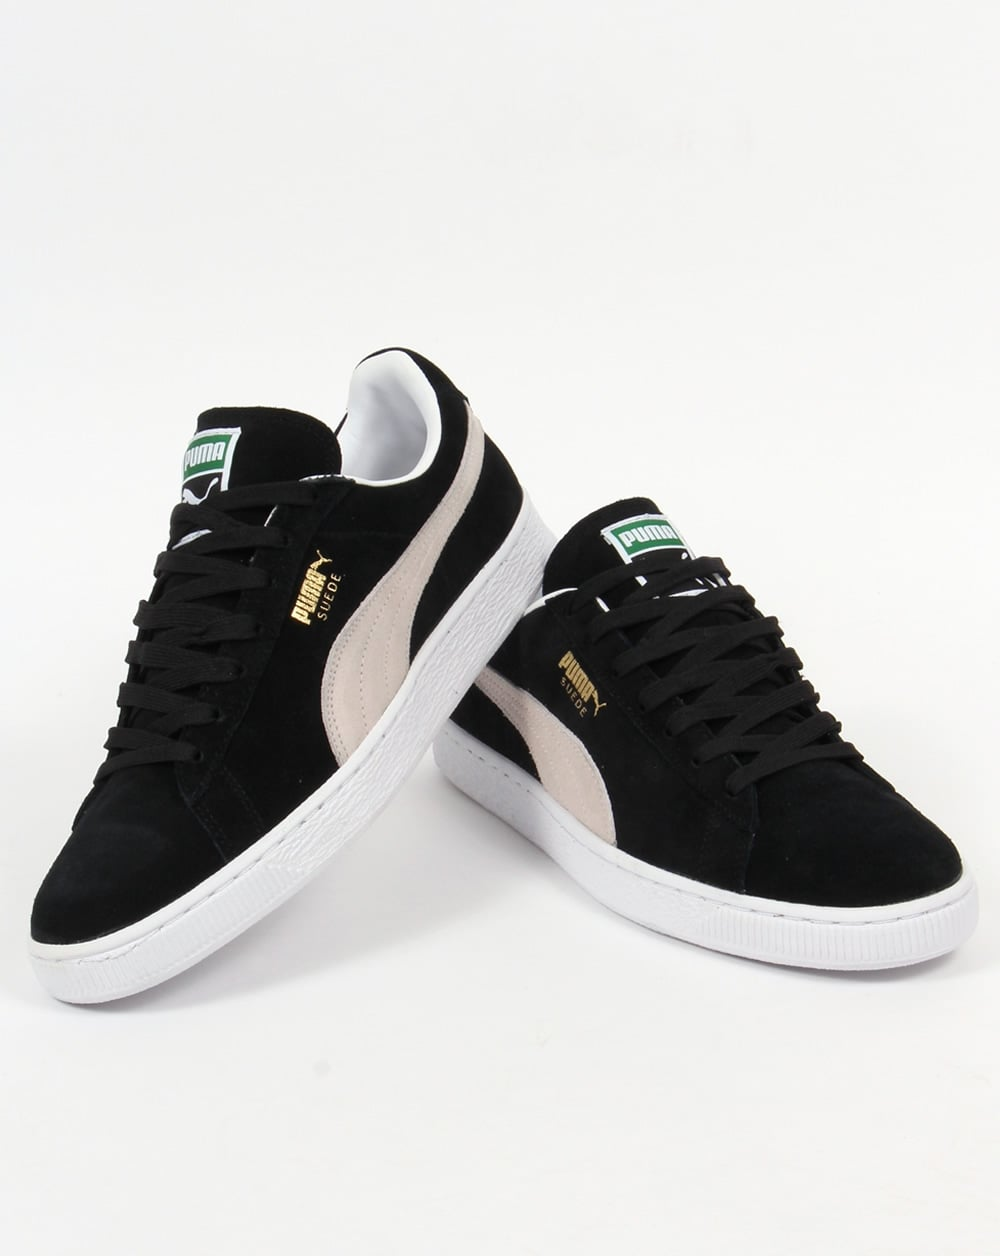 puma suede classic trainers black white states retro. Black Bedroom Furniture Sets. Home Design Ideas